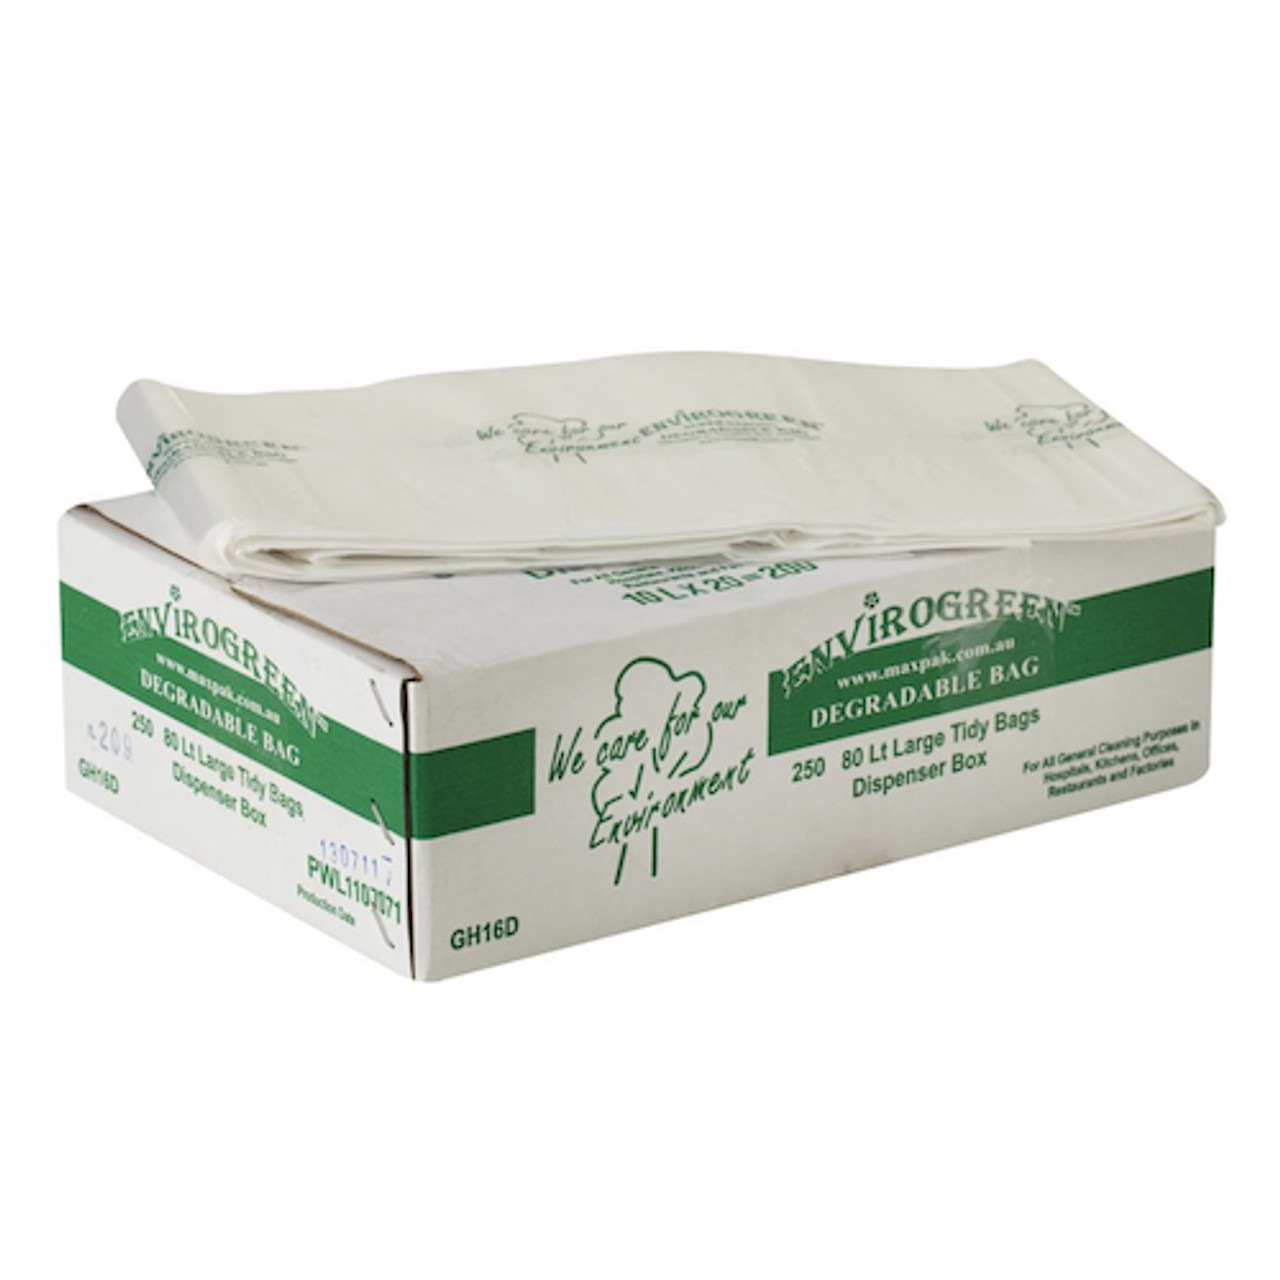 MaxValu Degradable 80 Litres Bin Liners Clear 250 Tidy Garbage Bags (GH16D) Envirogreen Biodegradable | Environmentally Friendly